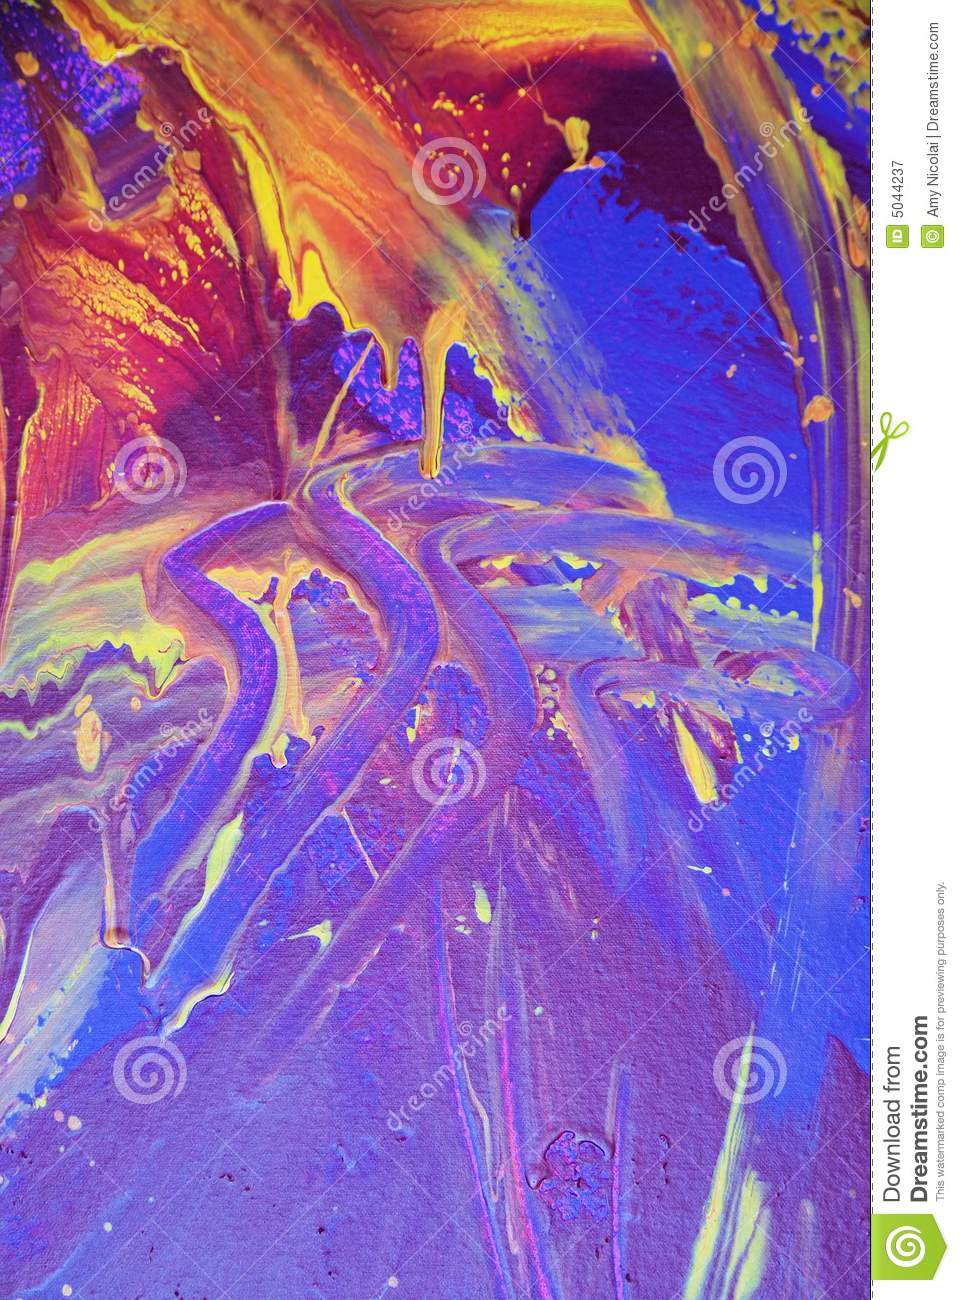 Abstract purple & blue paint